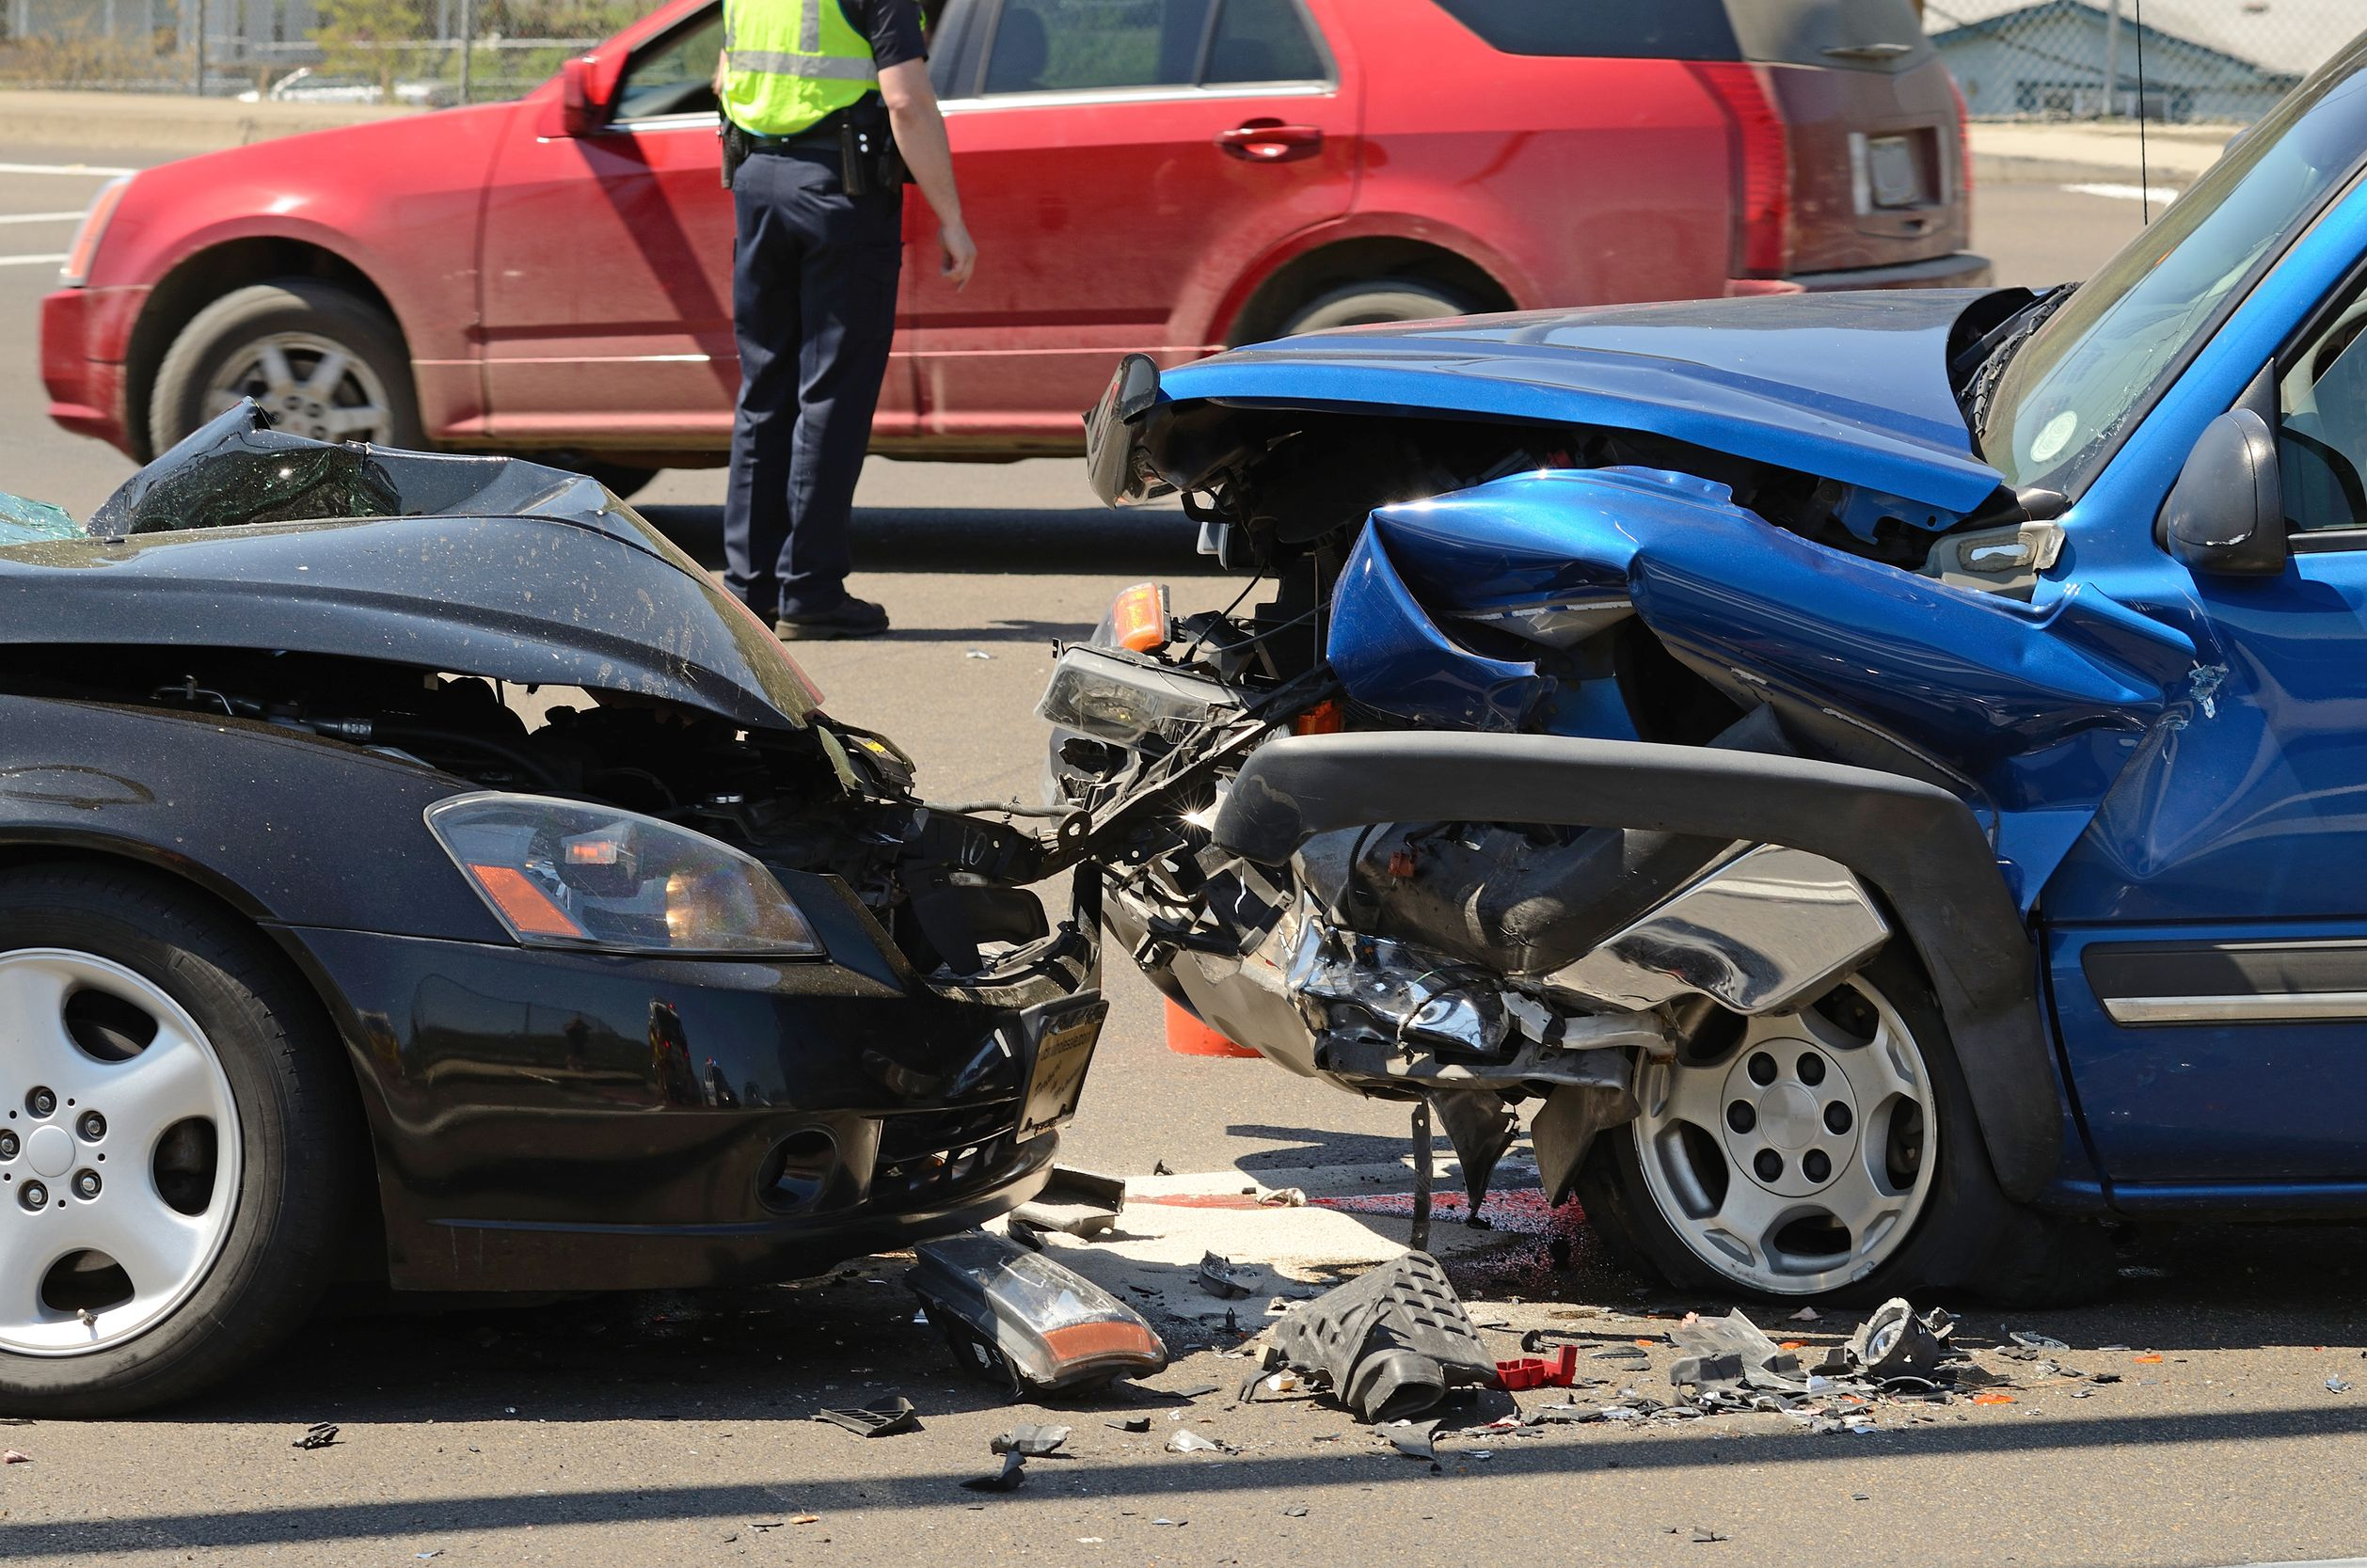 Have You Been Injured In A Car Accident?